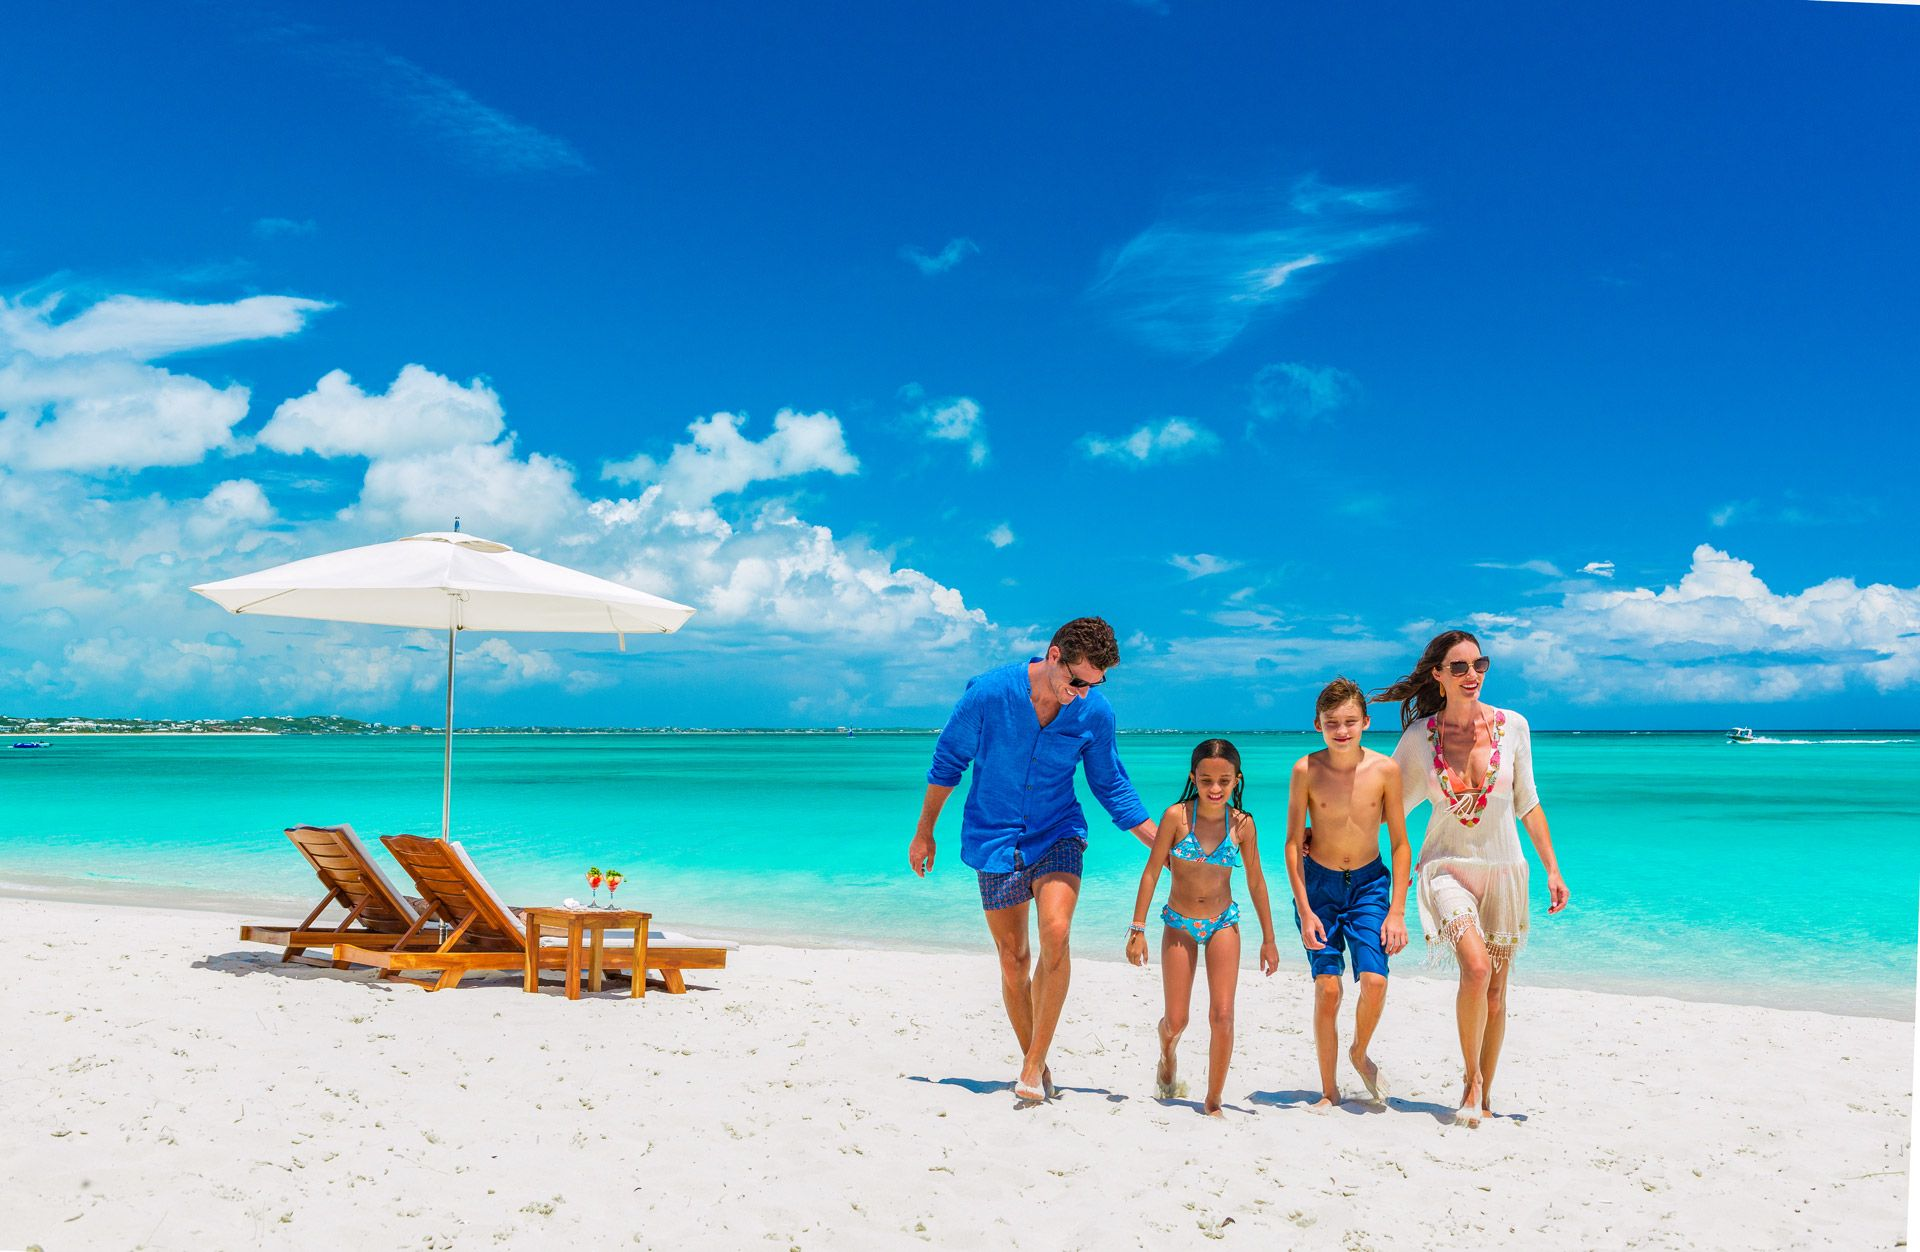 Enhance Your Experience With These Beaches Resorts Insider Tips & Tricks